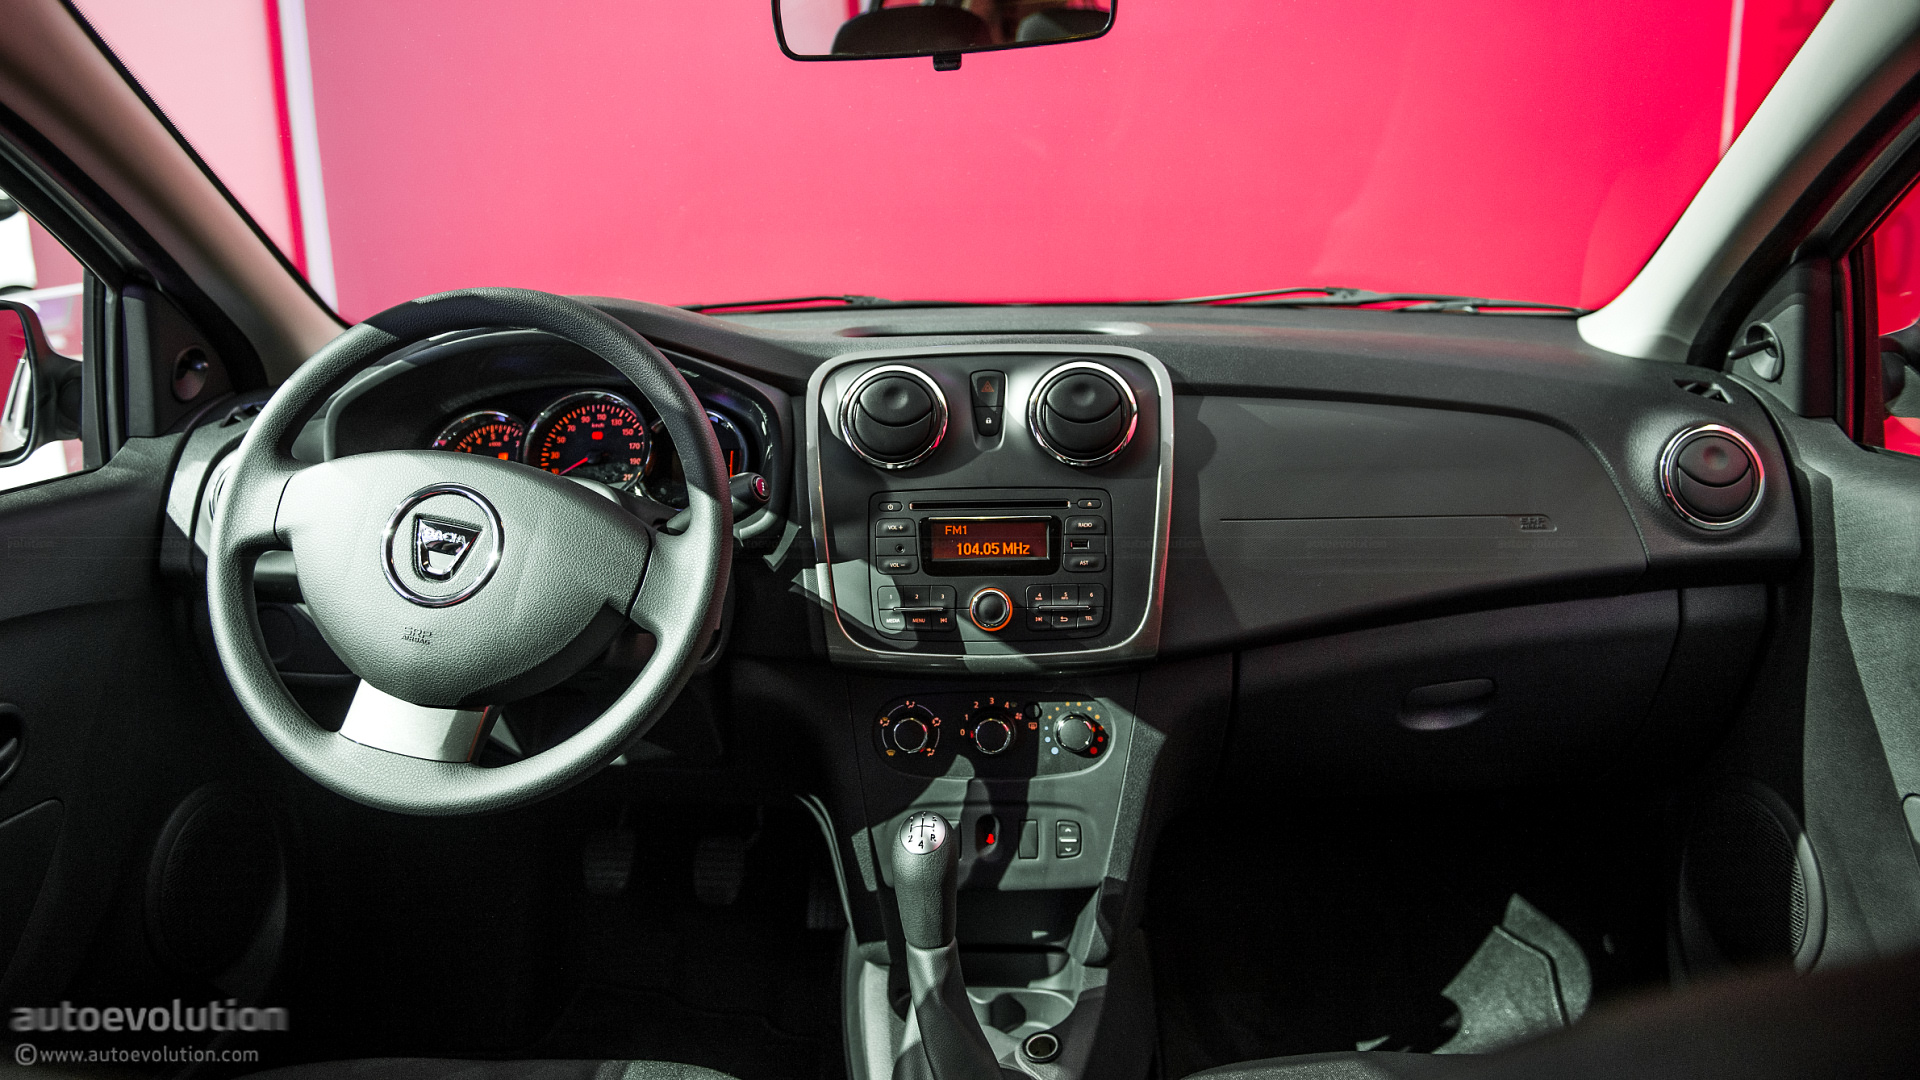 Dacia Sandero 2014 Interior wallpaper | 1920x1080 | #7746